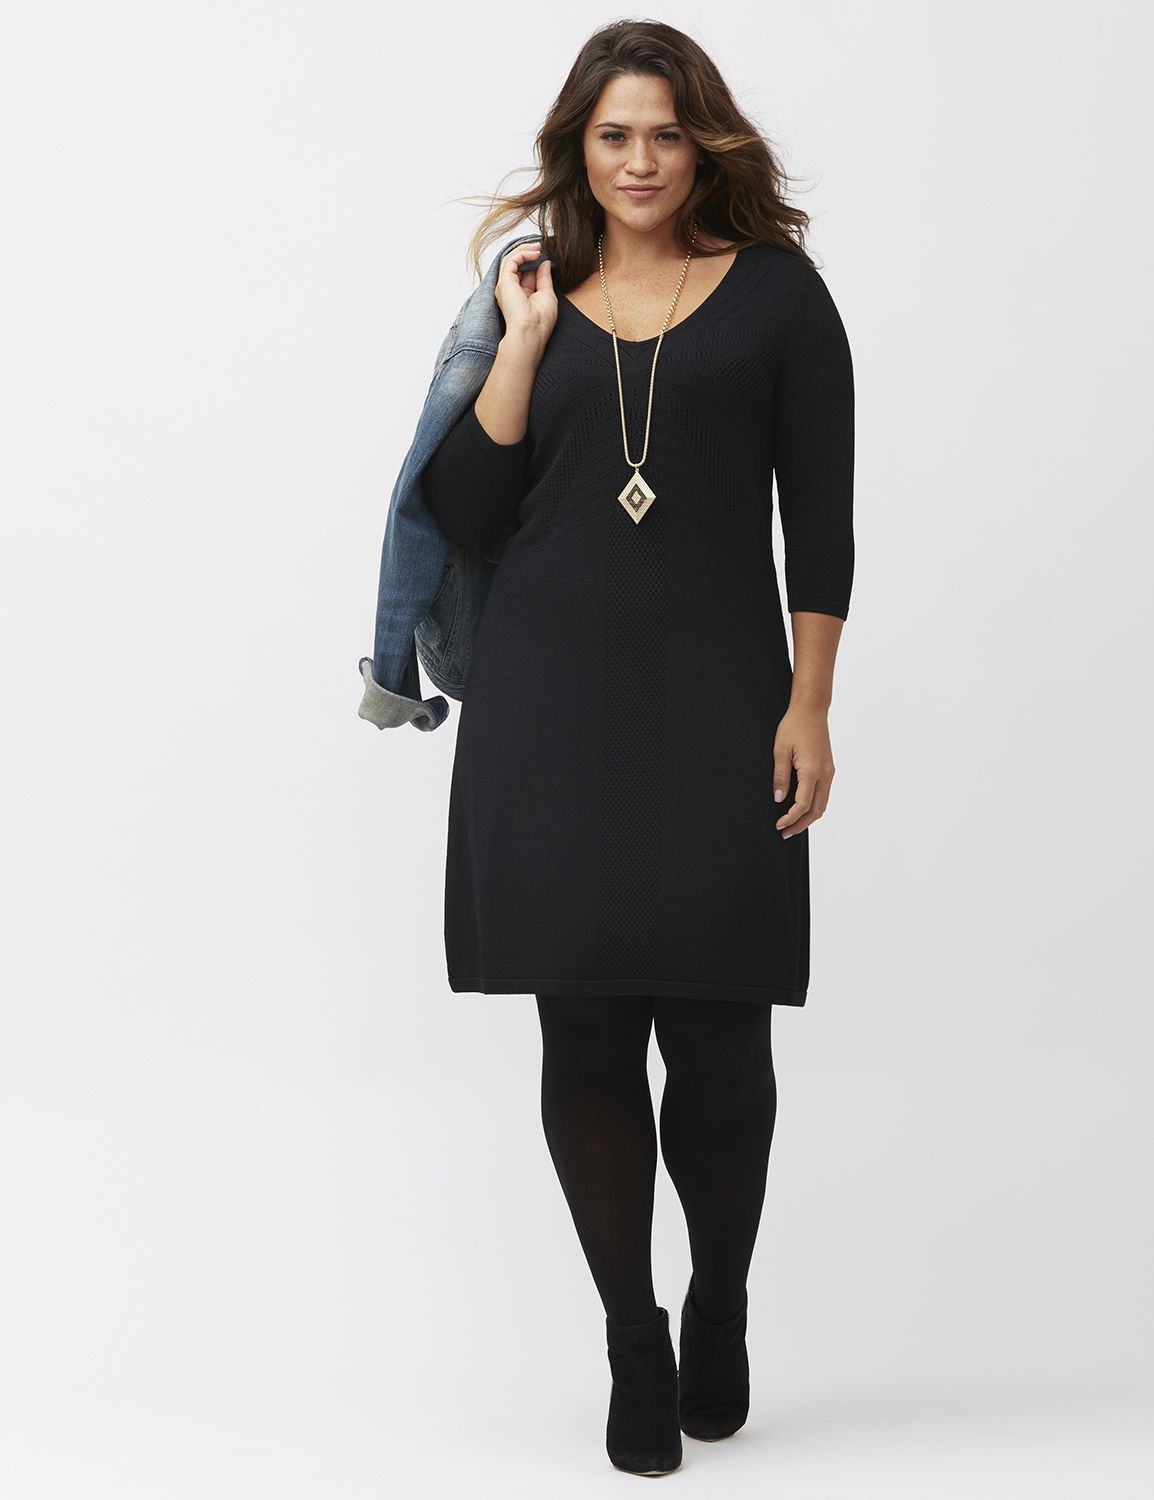 Pointelle A-line sweater dress by Lane Bryant | Lane Bryant